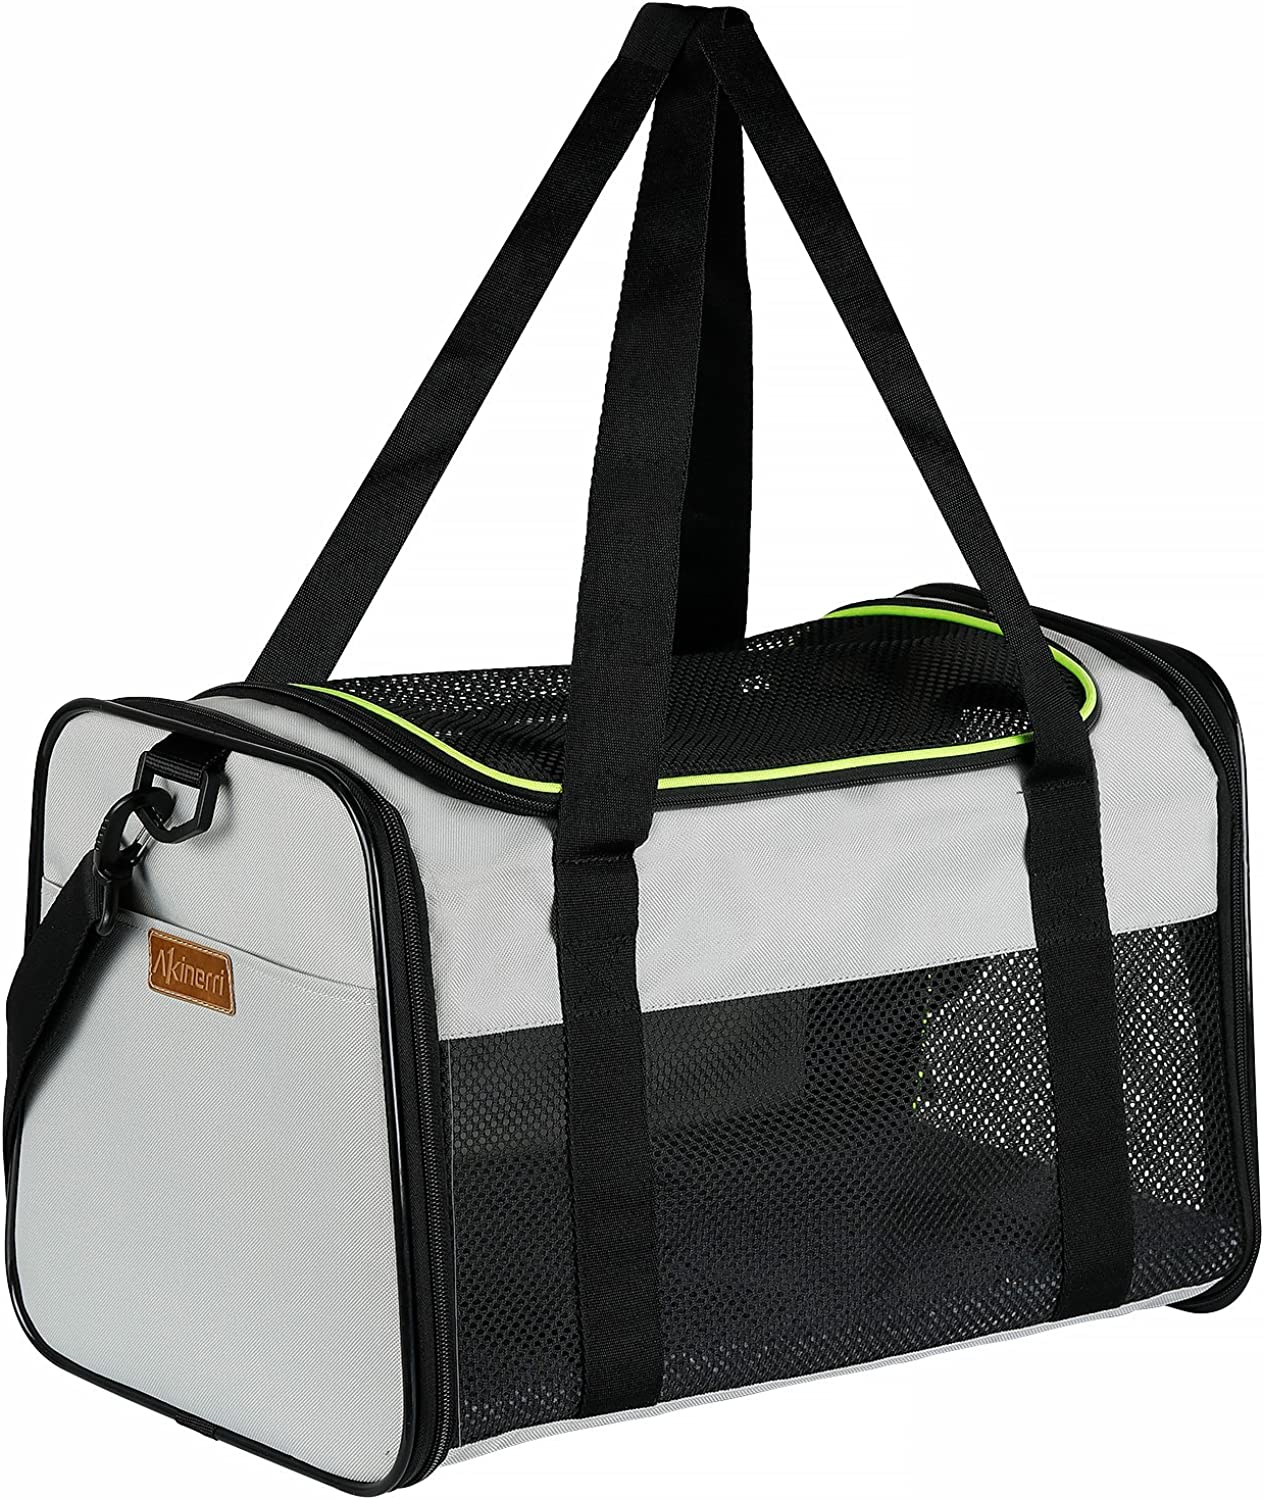 Akinerri Airline Approved Pet Carriers,Soft Sided Collapsible Pet Travel Carrier for Medium Puppy and Cats (Large)